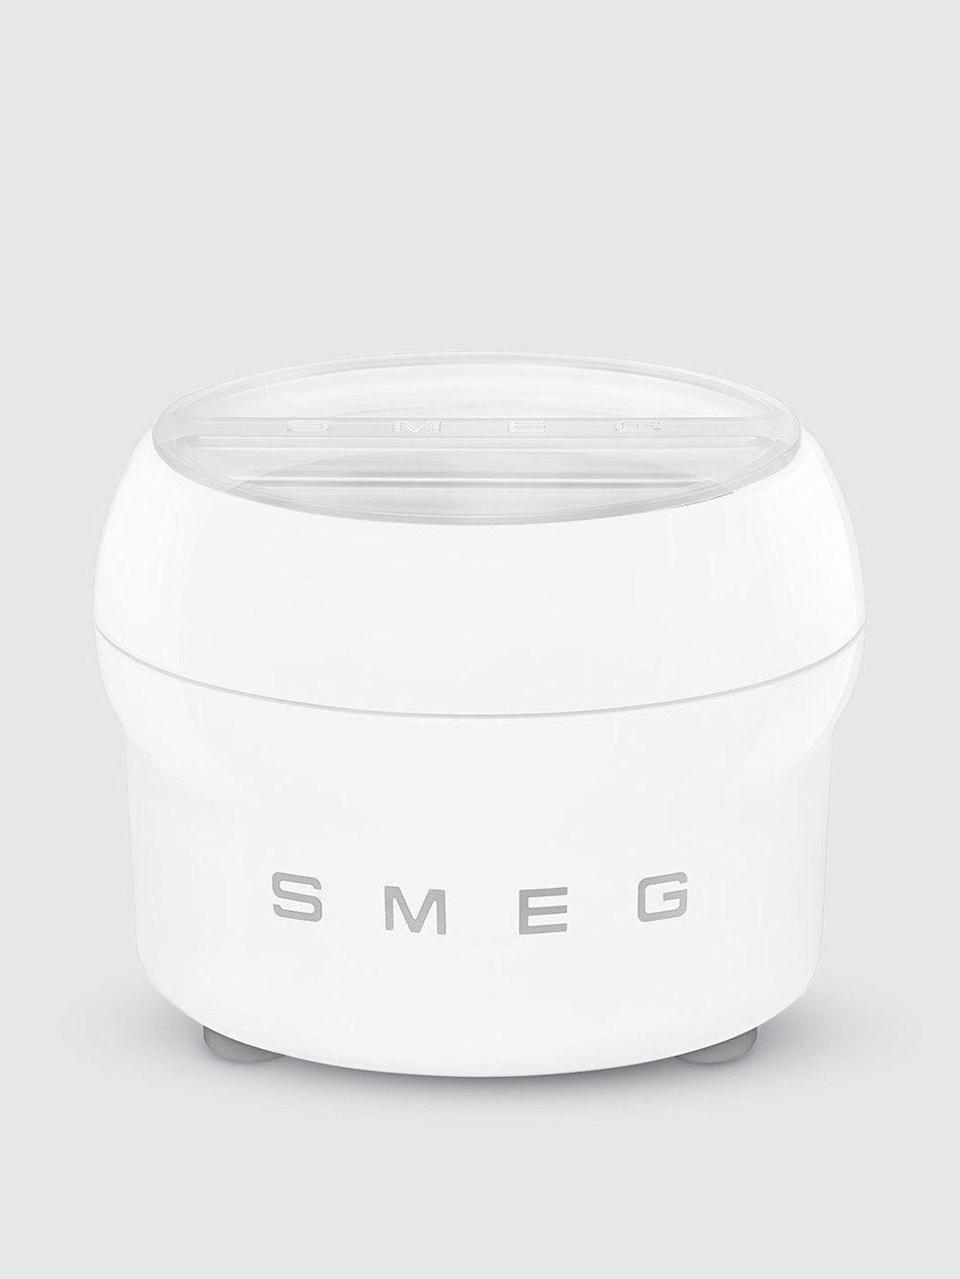 """<p><strong>Smeg</strong></p><p>verishop.com</p><p><strong>$79.99</strong></p><p><a href=""""https://go.redirectingat.com?id=74968X1596630&url=https%3A%2F%2Fwww.verishop.com%2Fsmeg%2Fkitchen-tools-accessories%2Fice-cream-maker-accessory%2Fp4798800035863&sref=https%3A%2F%2Fwww.thepioneerwoman.com%2Ffood-cooking%2Fg36080315%2Fbest-ice-cream-makers%2F"""" rel=""""nofollow noopener"""" target=""""_blank"""" data-ylk=""""slk:Shop Now"""" class=""""link rapid-noclick-resp"""">Shop Now</a></p><p>If you already have a SMEG stand mixer, this is just for you. With this attachment you can also create yummy frozen desserts for summer. </p>"""